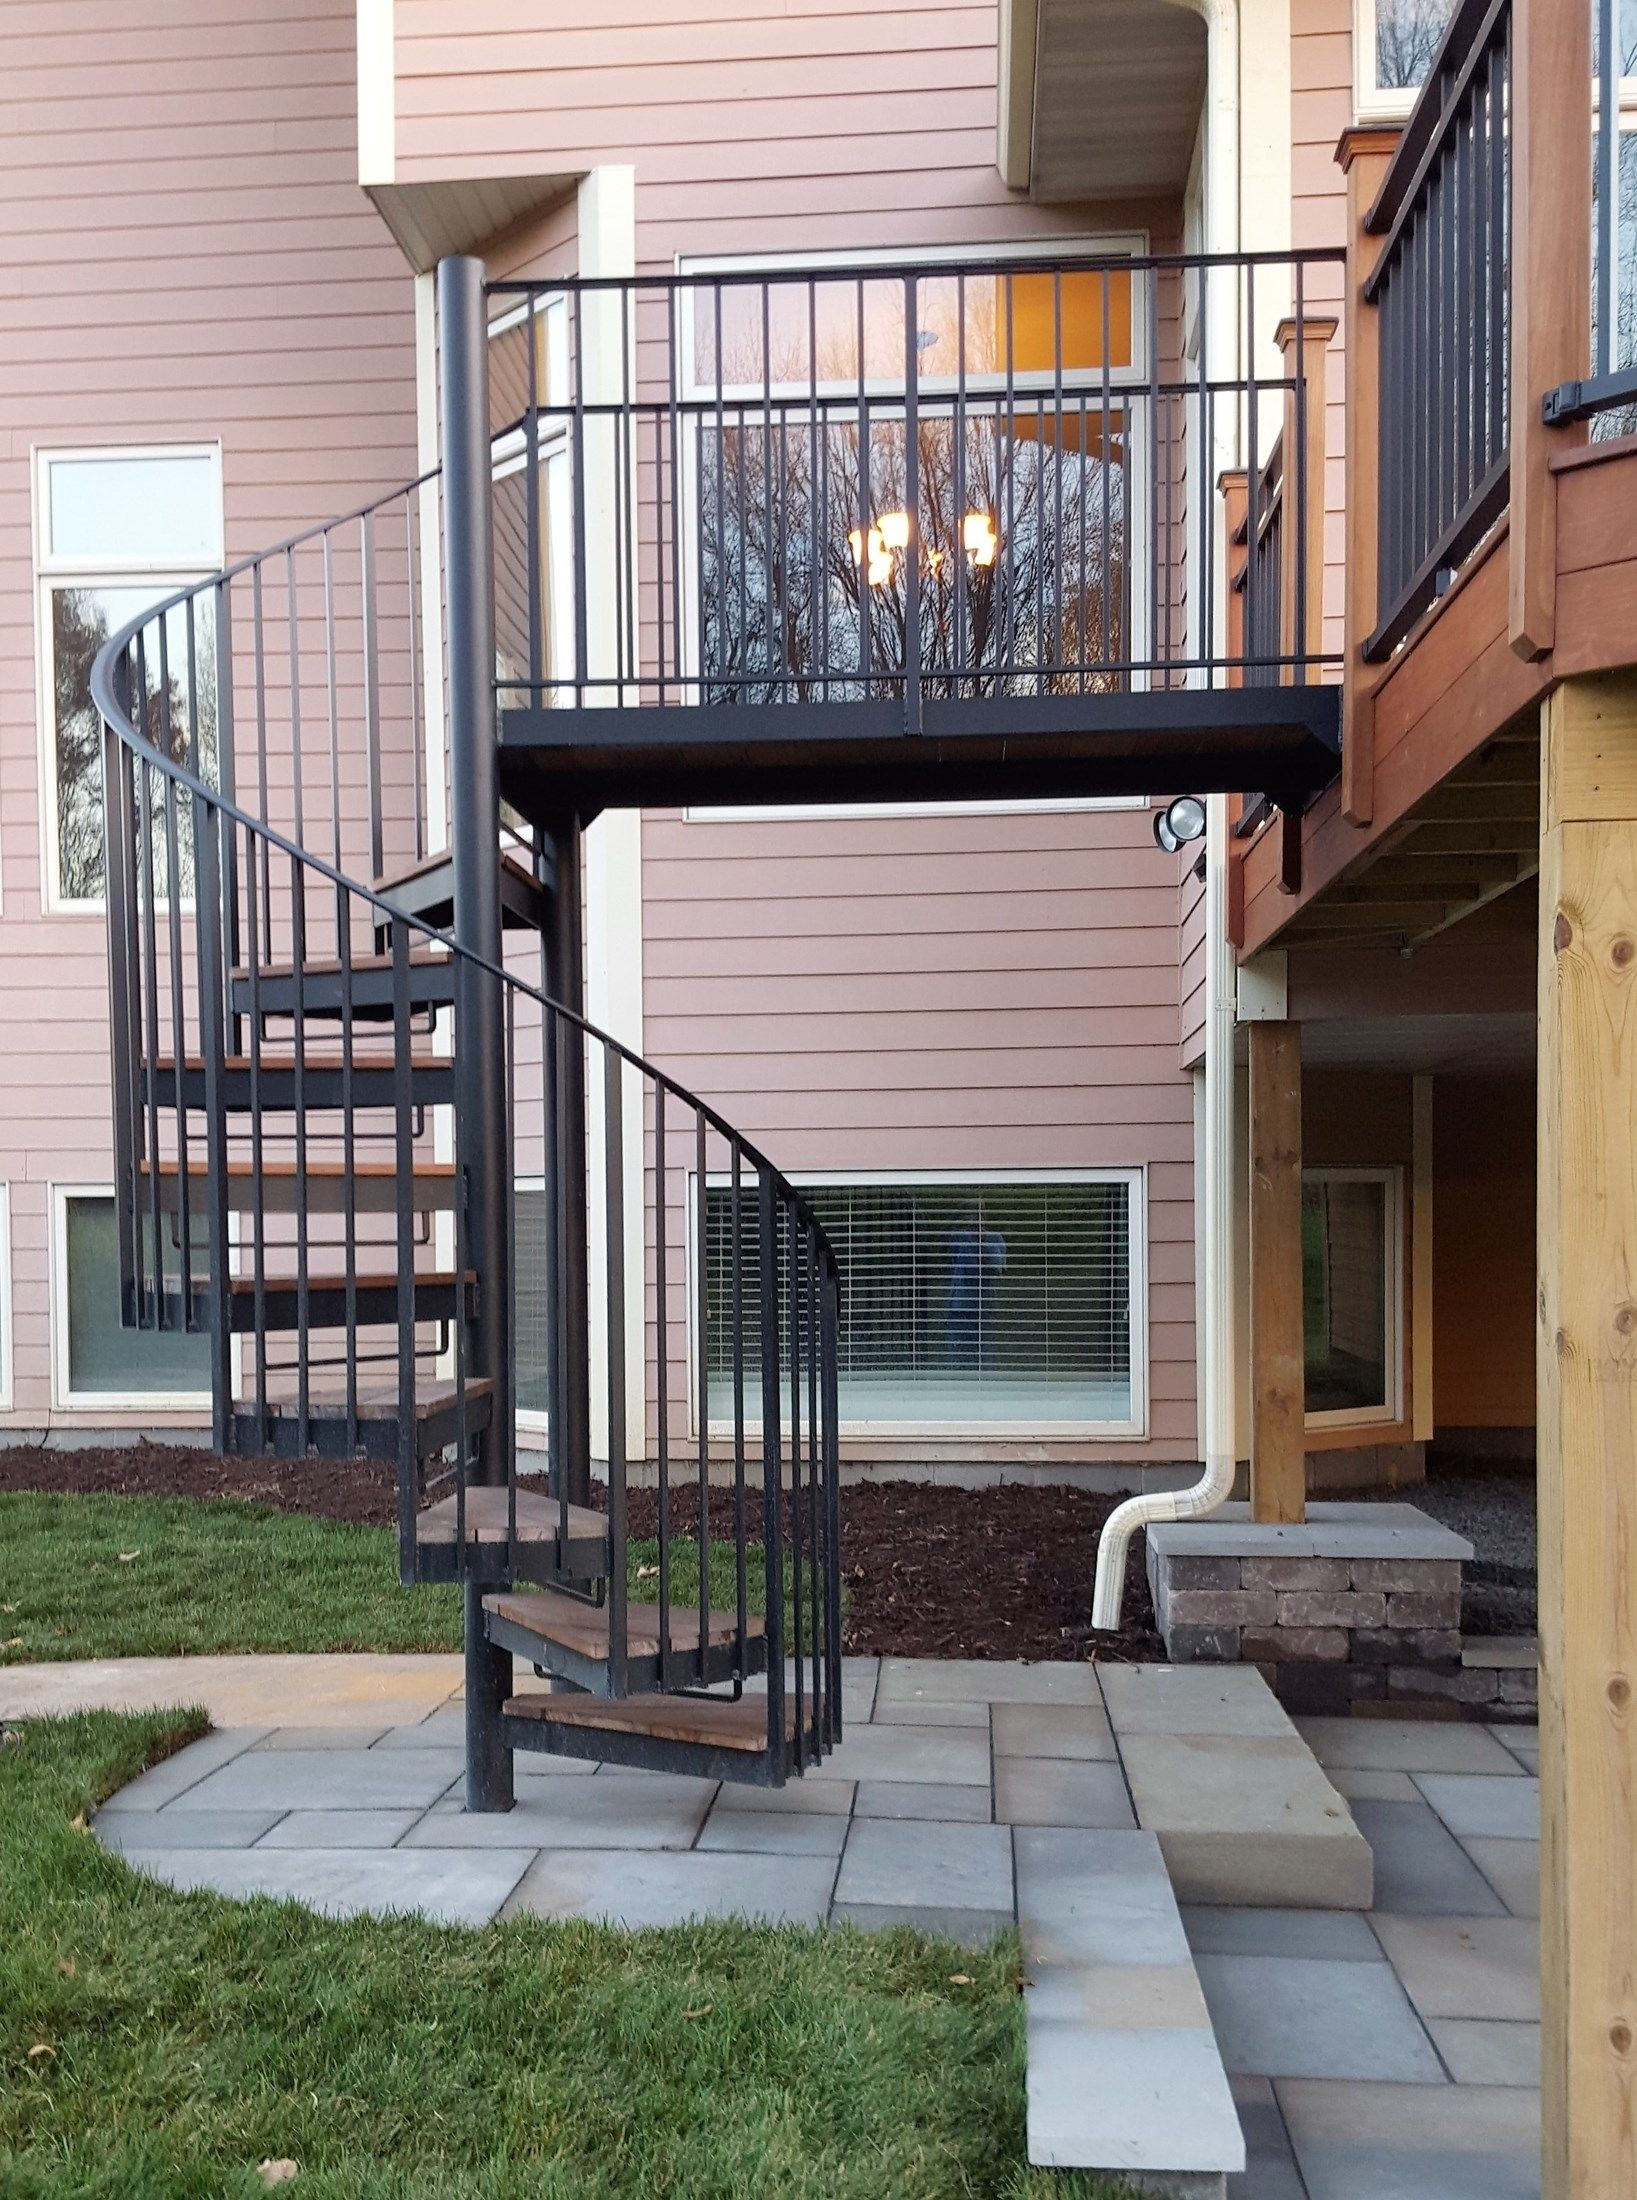 Deck With Spiral Stair Case Picture 6450 Decks Com | Outdoor Spiral Staircase For Deck | 36 Inch Diameter | Small Footprint | Steel | Balcony Outdoor | 2 Story